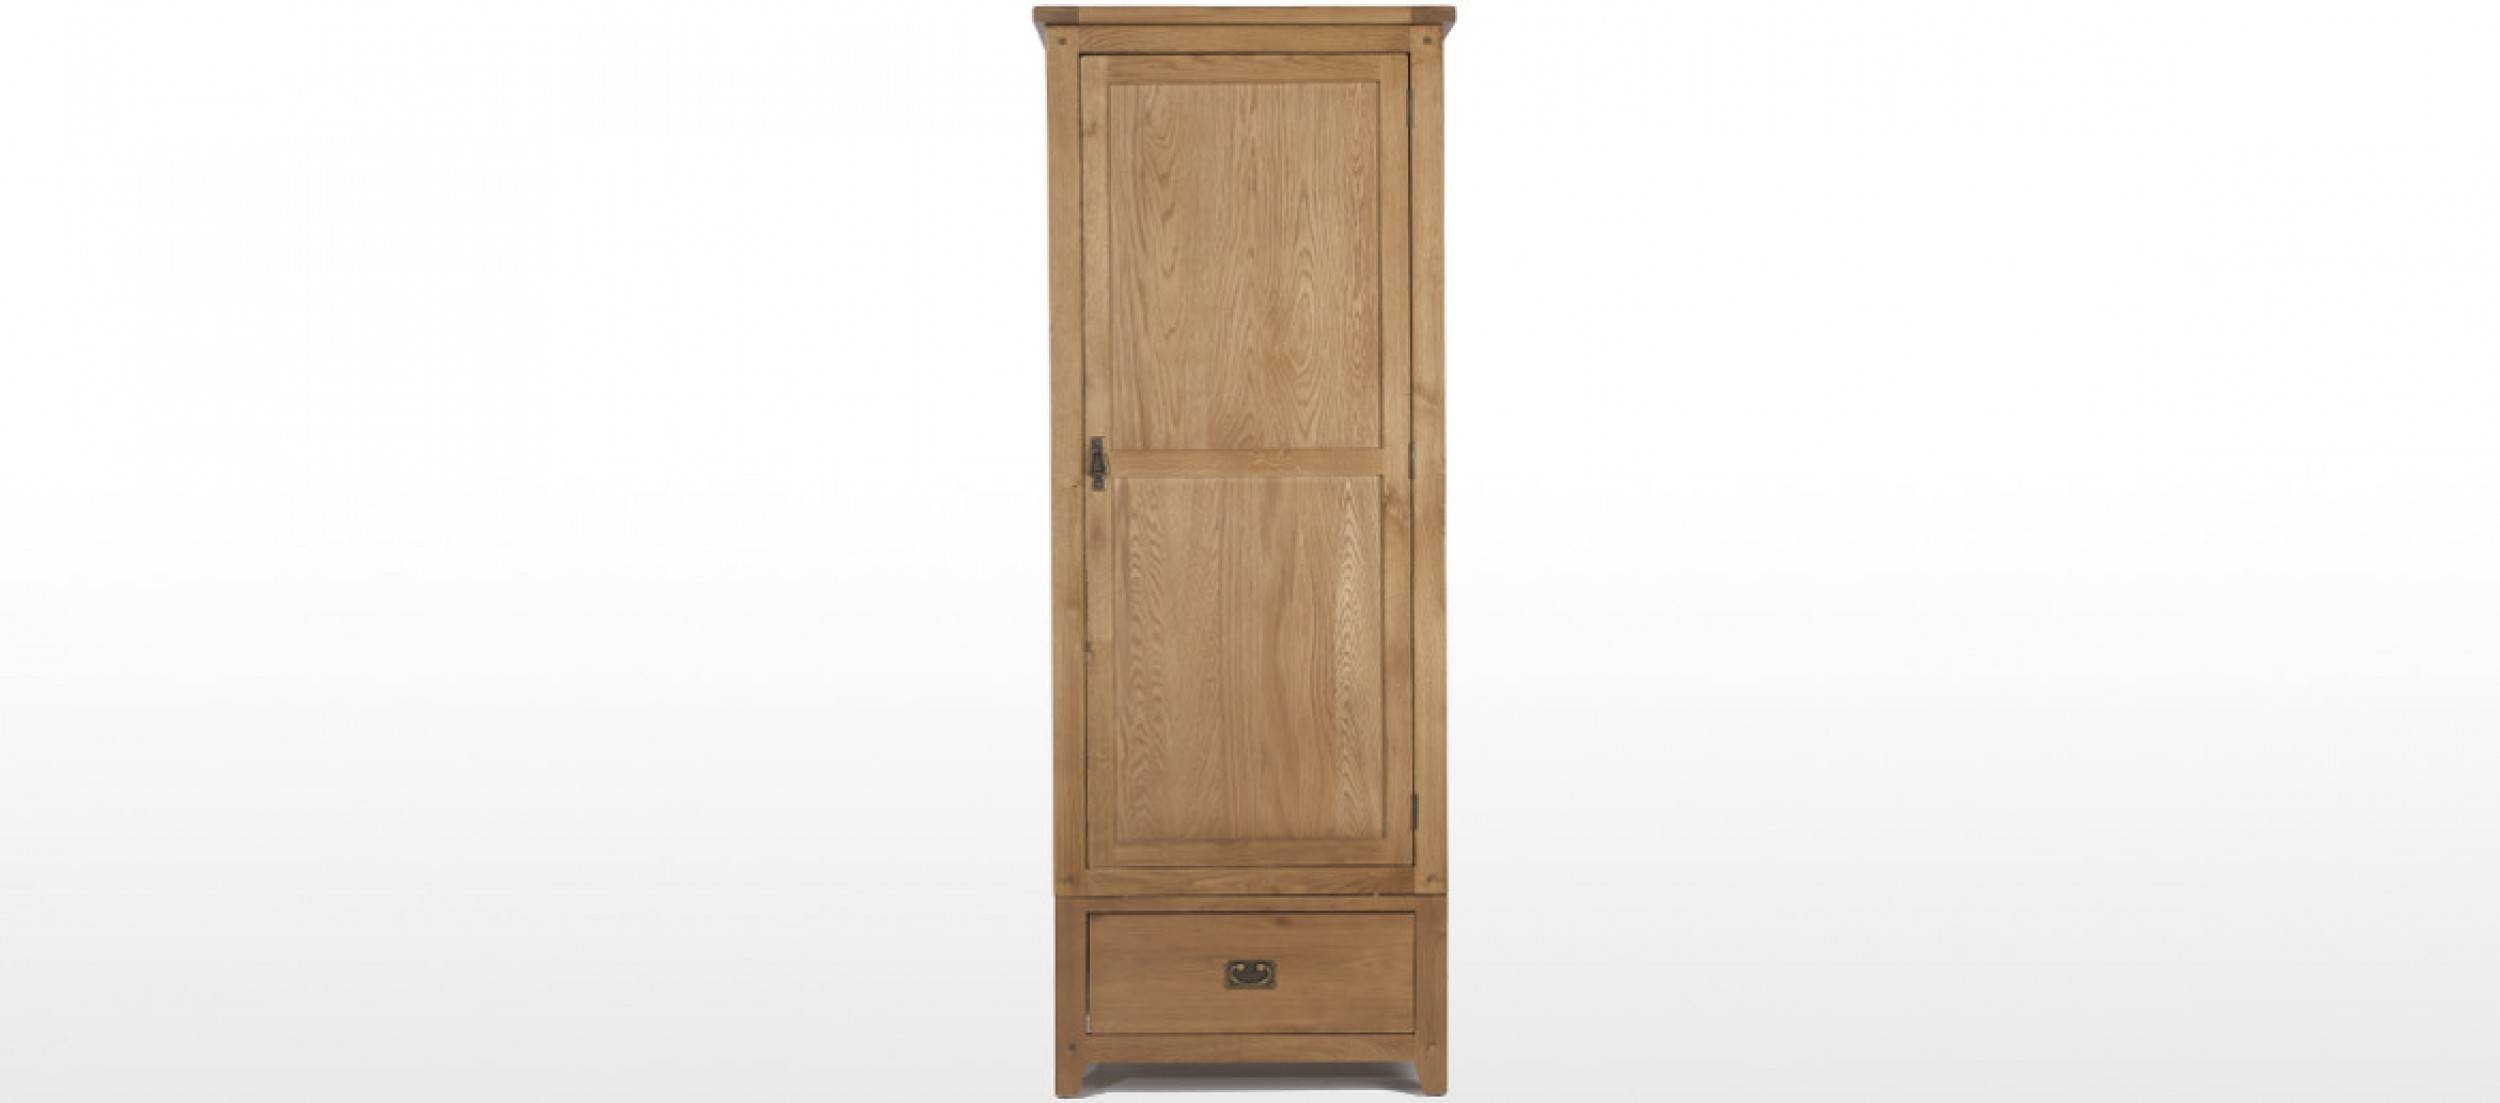 Rustic Oak Single Wardrobe | Quercus Living with Single Oak Wardrobes With Drawers (Image 14 of 15)